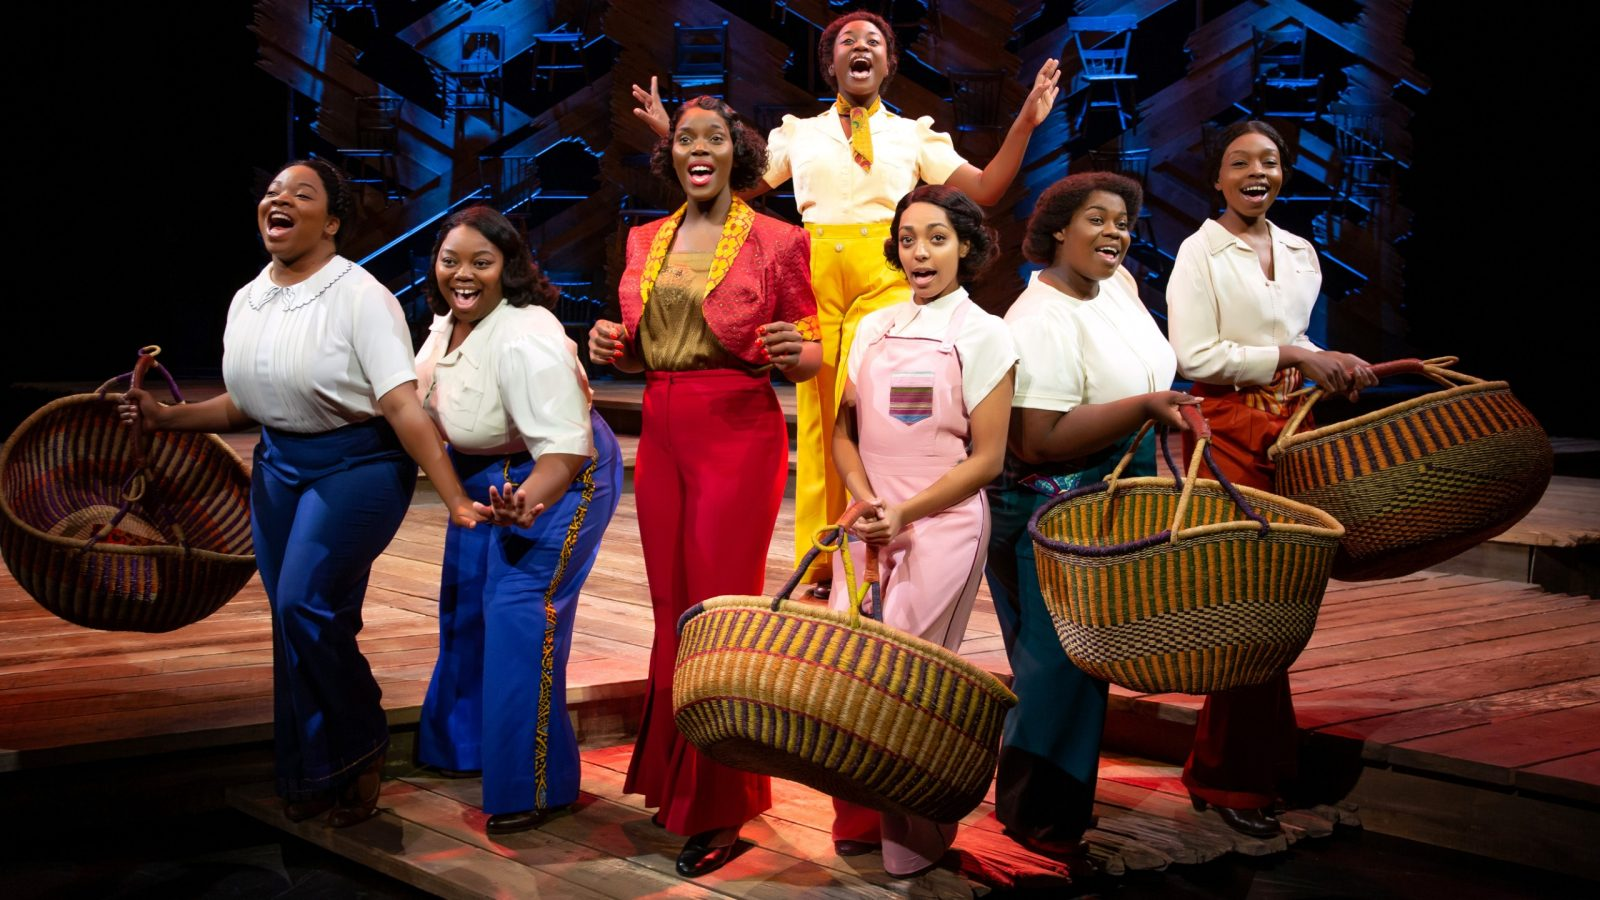 The Color Purple; Line 1 - Elizabeth Adabale, Chédra Arielle, Sandie Lee, Gabriella Rodriguez, Shelby A. Sykes, Parris Lewis. Line 2 - Mariah Lyttle, THE COLOR PURPLE © JEREMY DANIEL